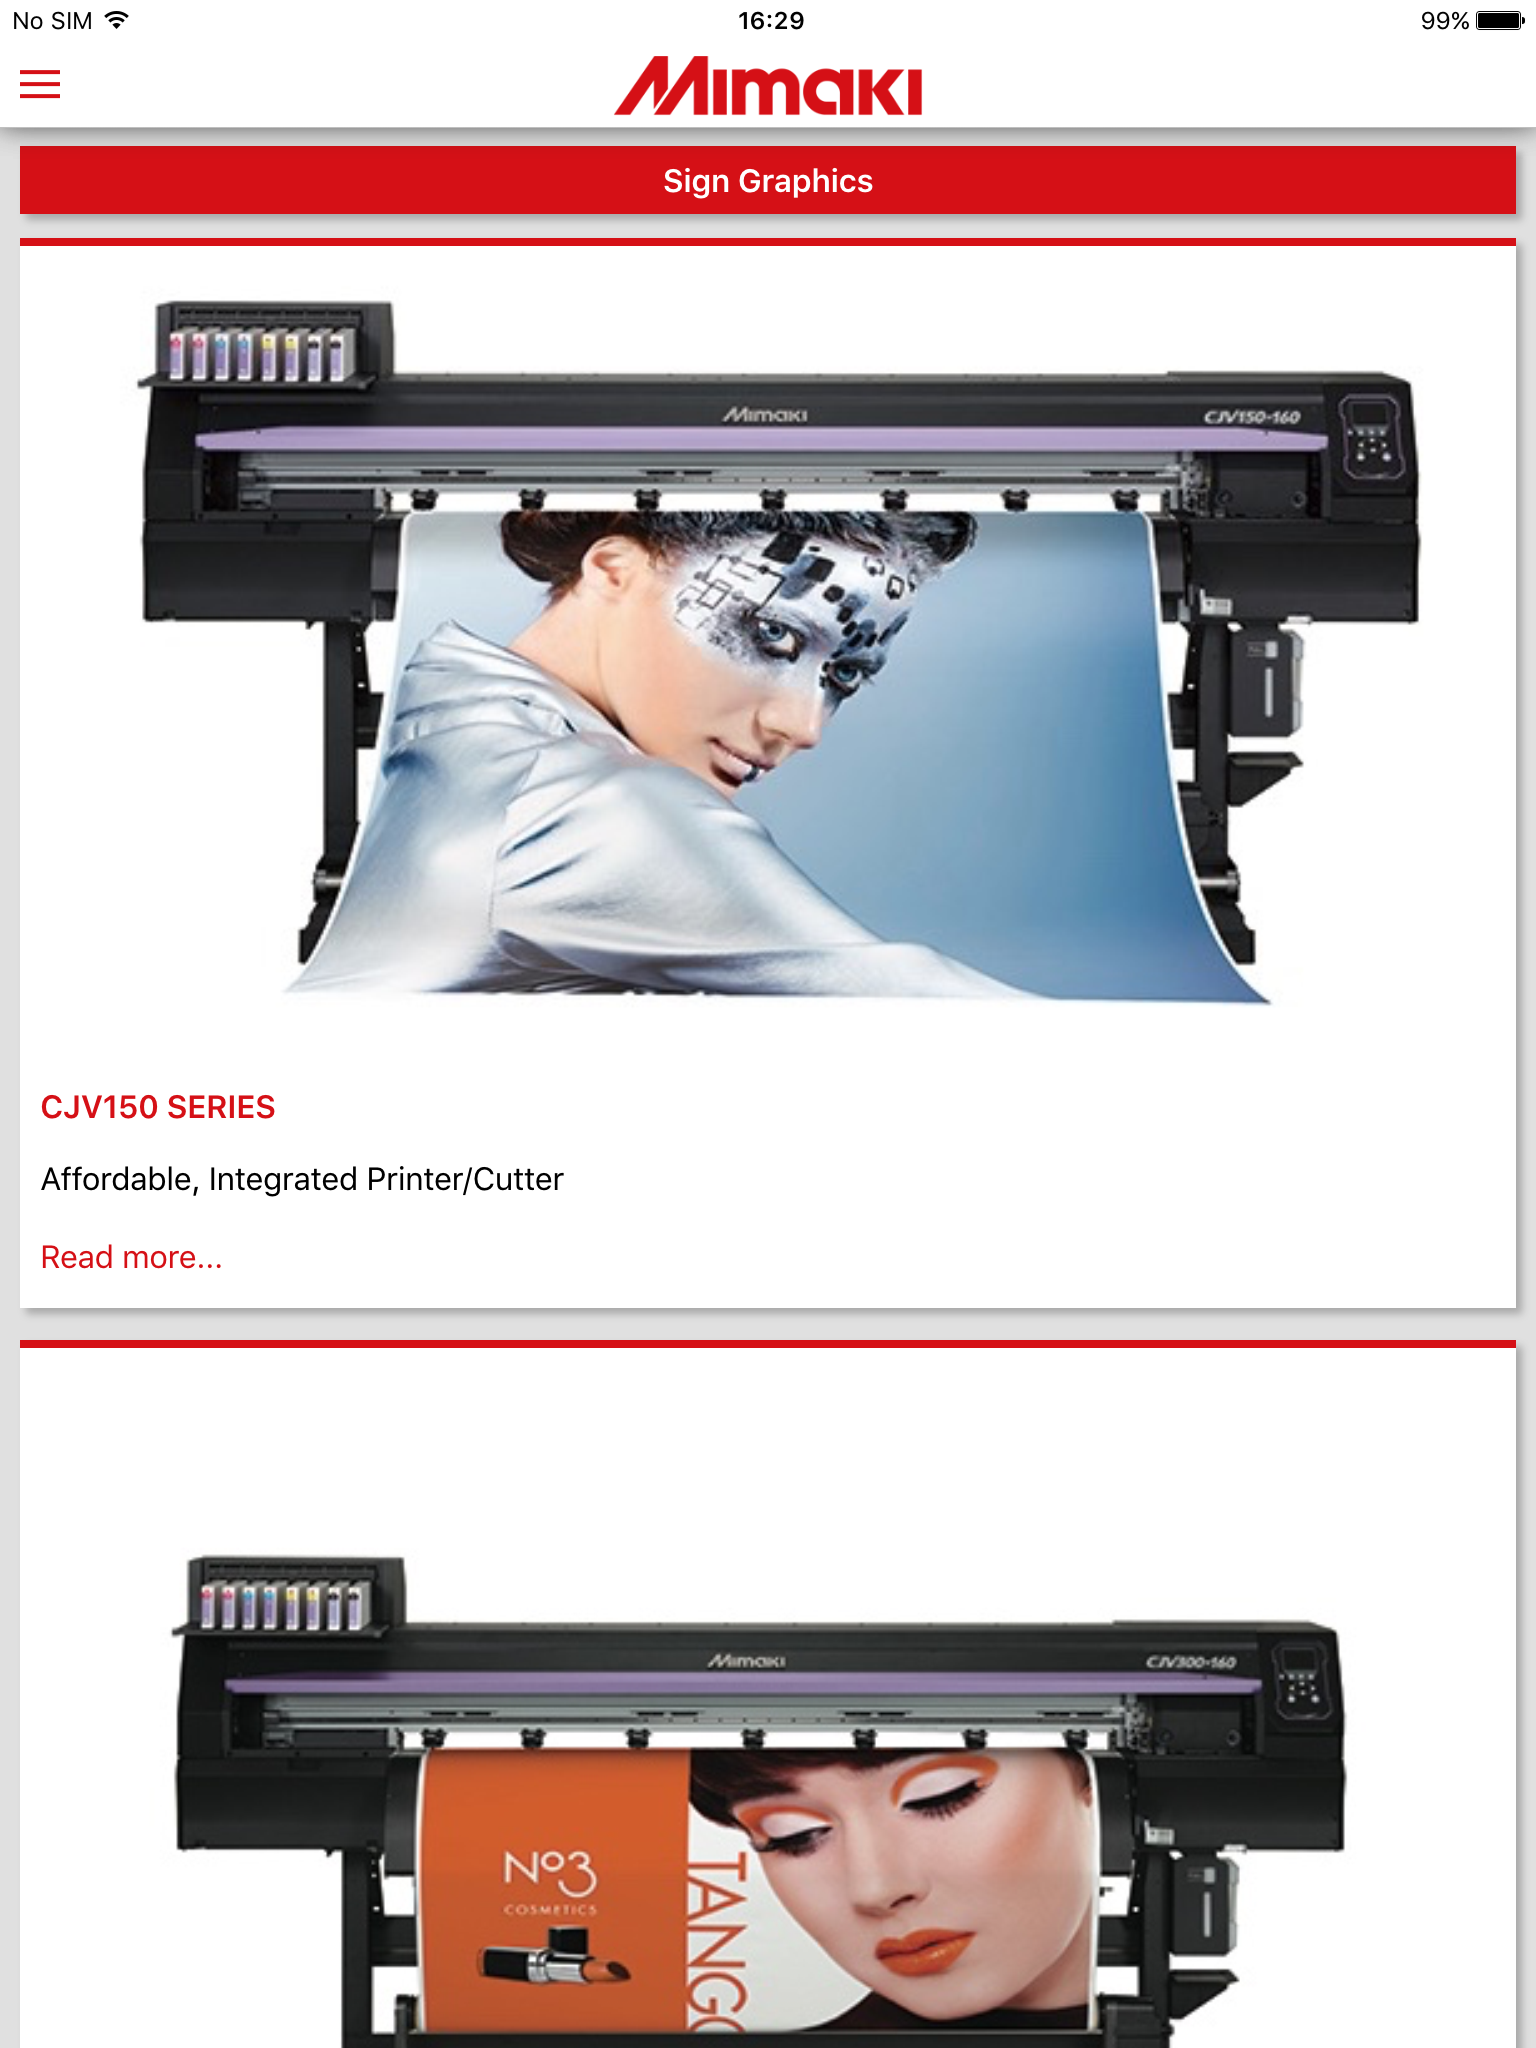 App-lying print inspiration with Mimaki - News - Mimaki Europe